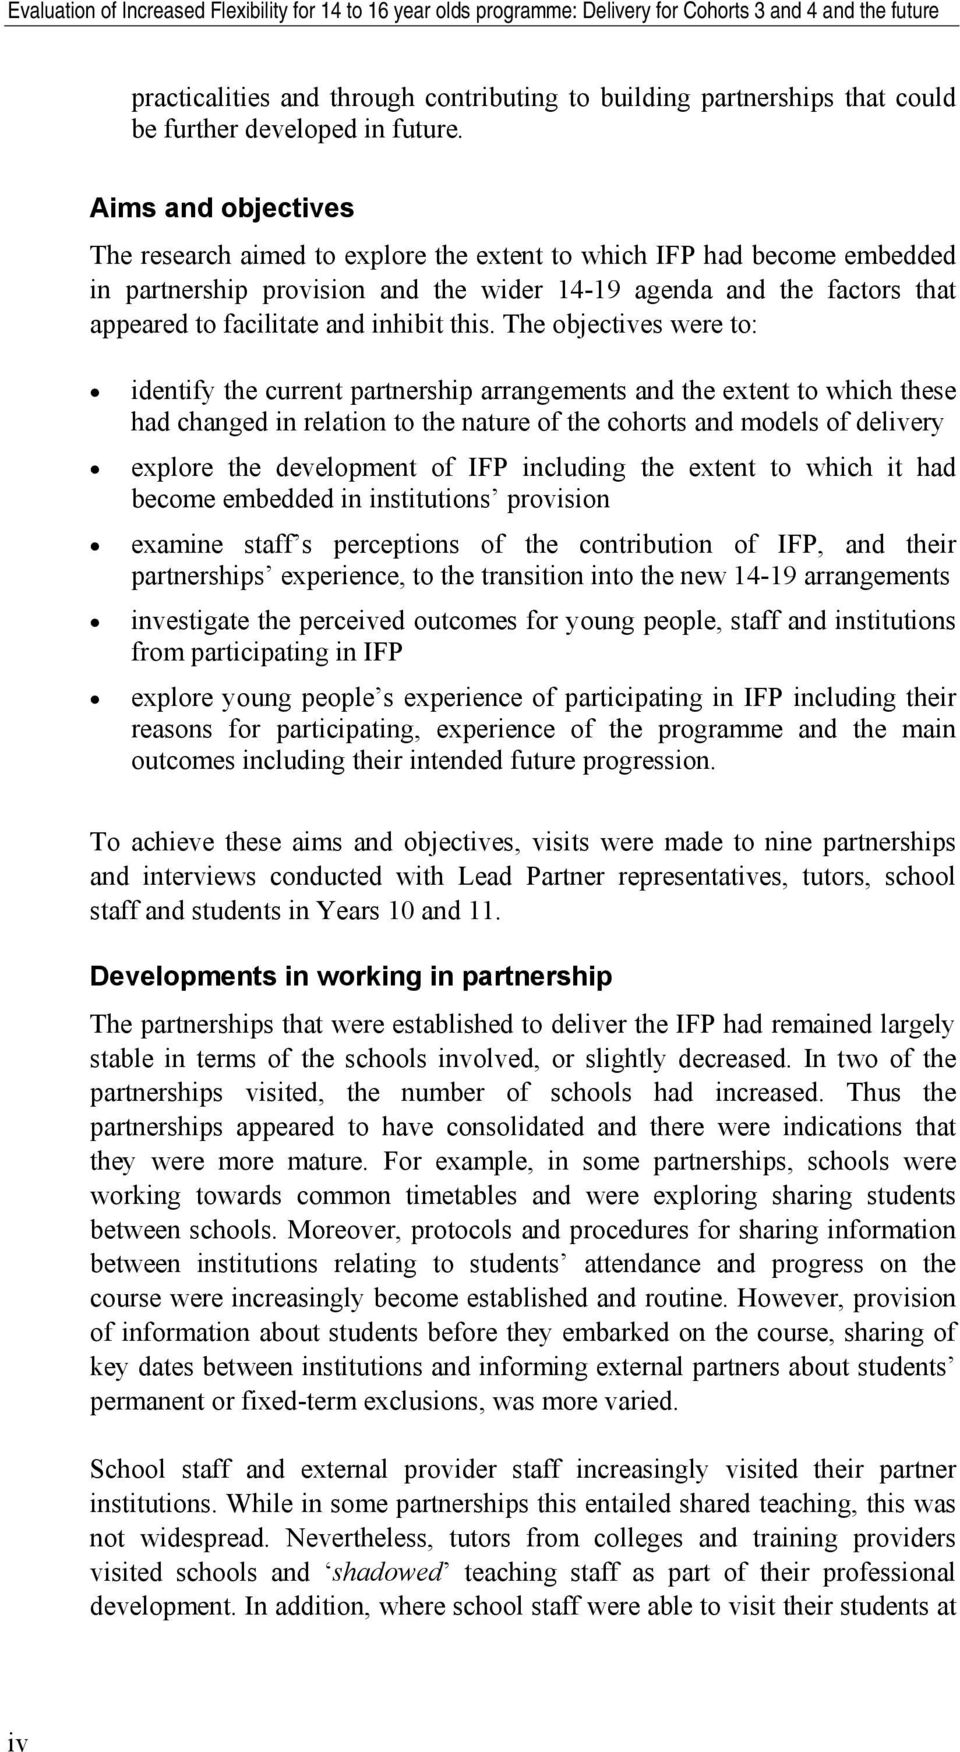 Aims and objectives The research aimed to explore the extent to which IFP had become embedded in partnership provision and the wider 14-19 agenda and the factors that appeared to facilitate and